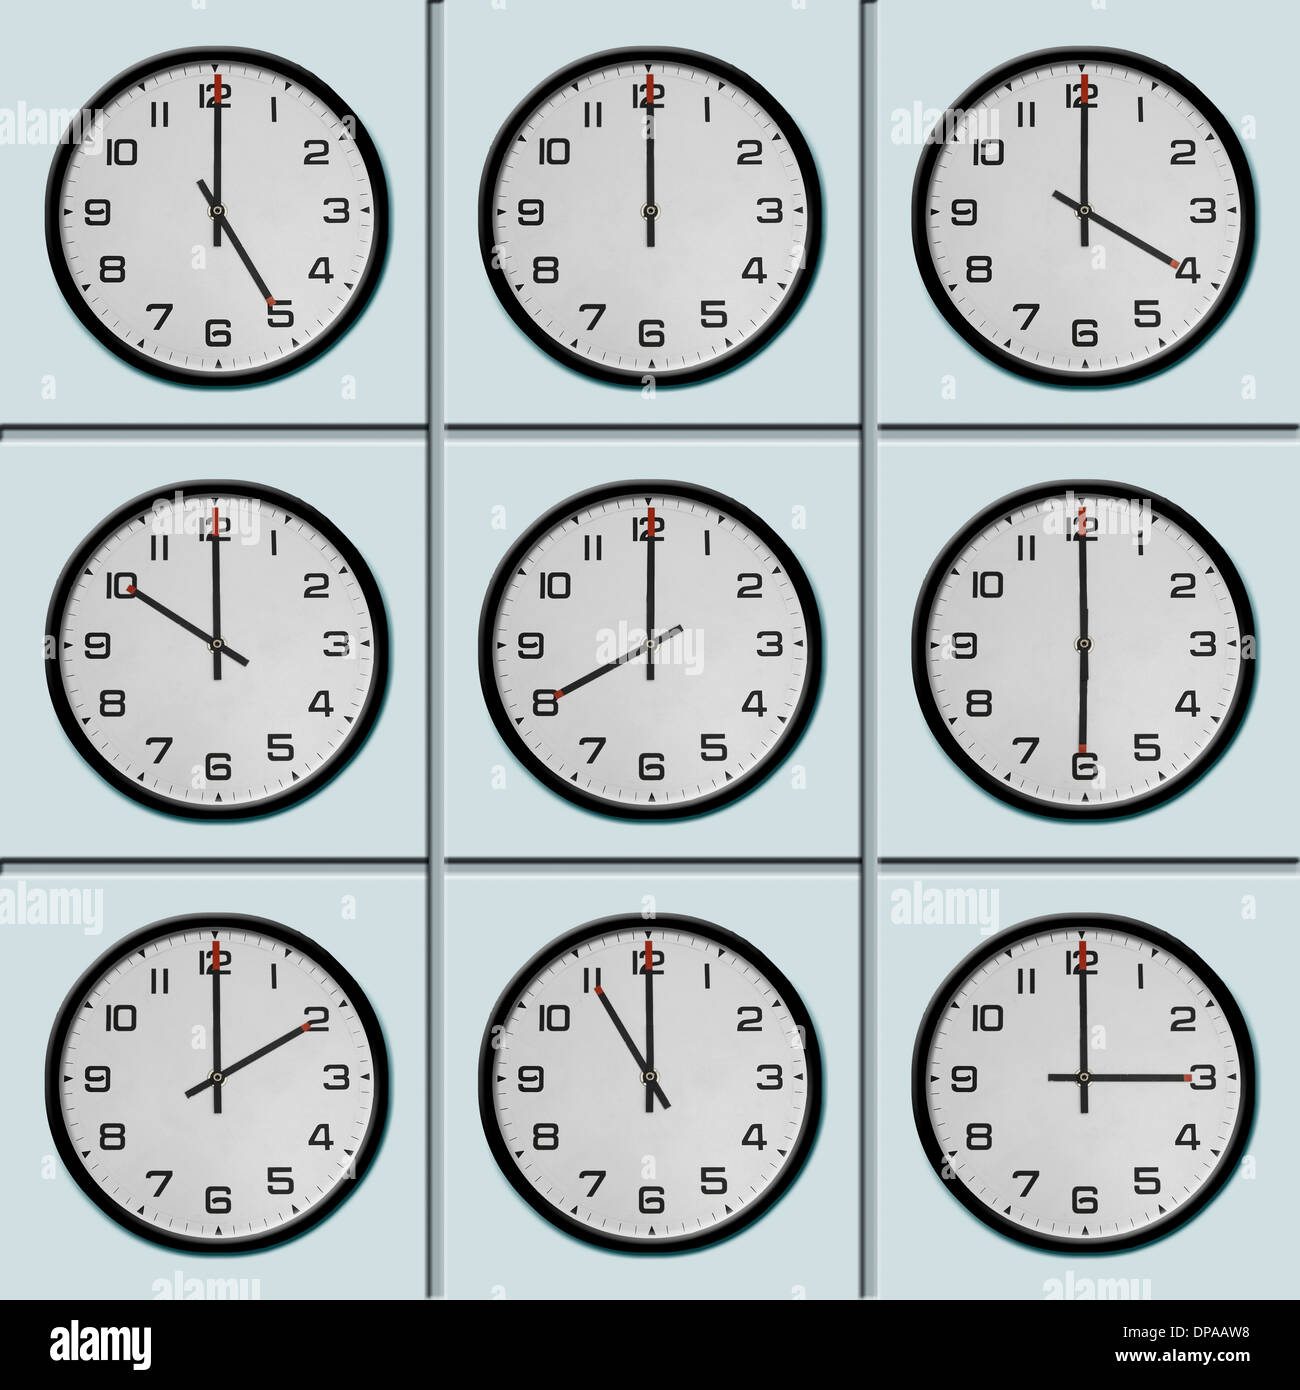 Clocks with different time zone Stock Photo: 65381604 - Alamy